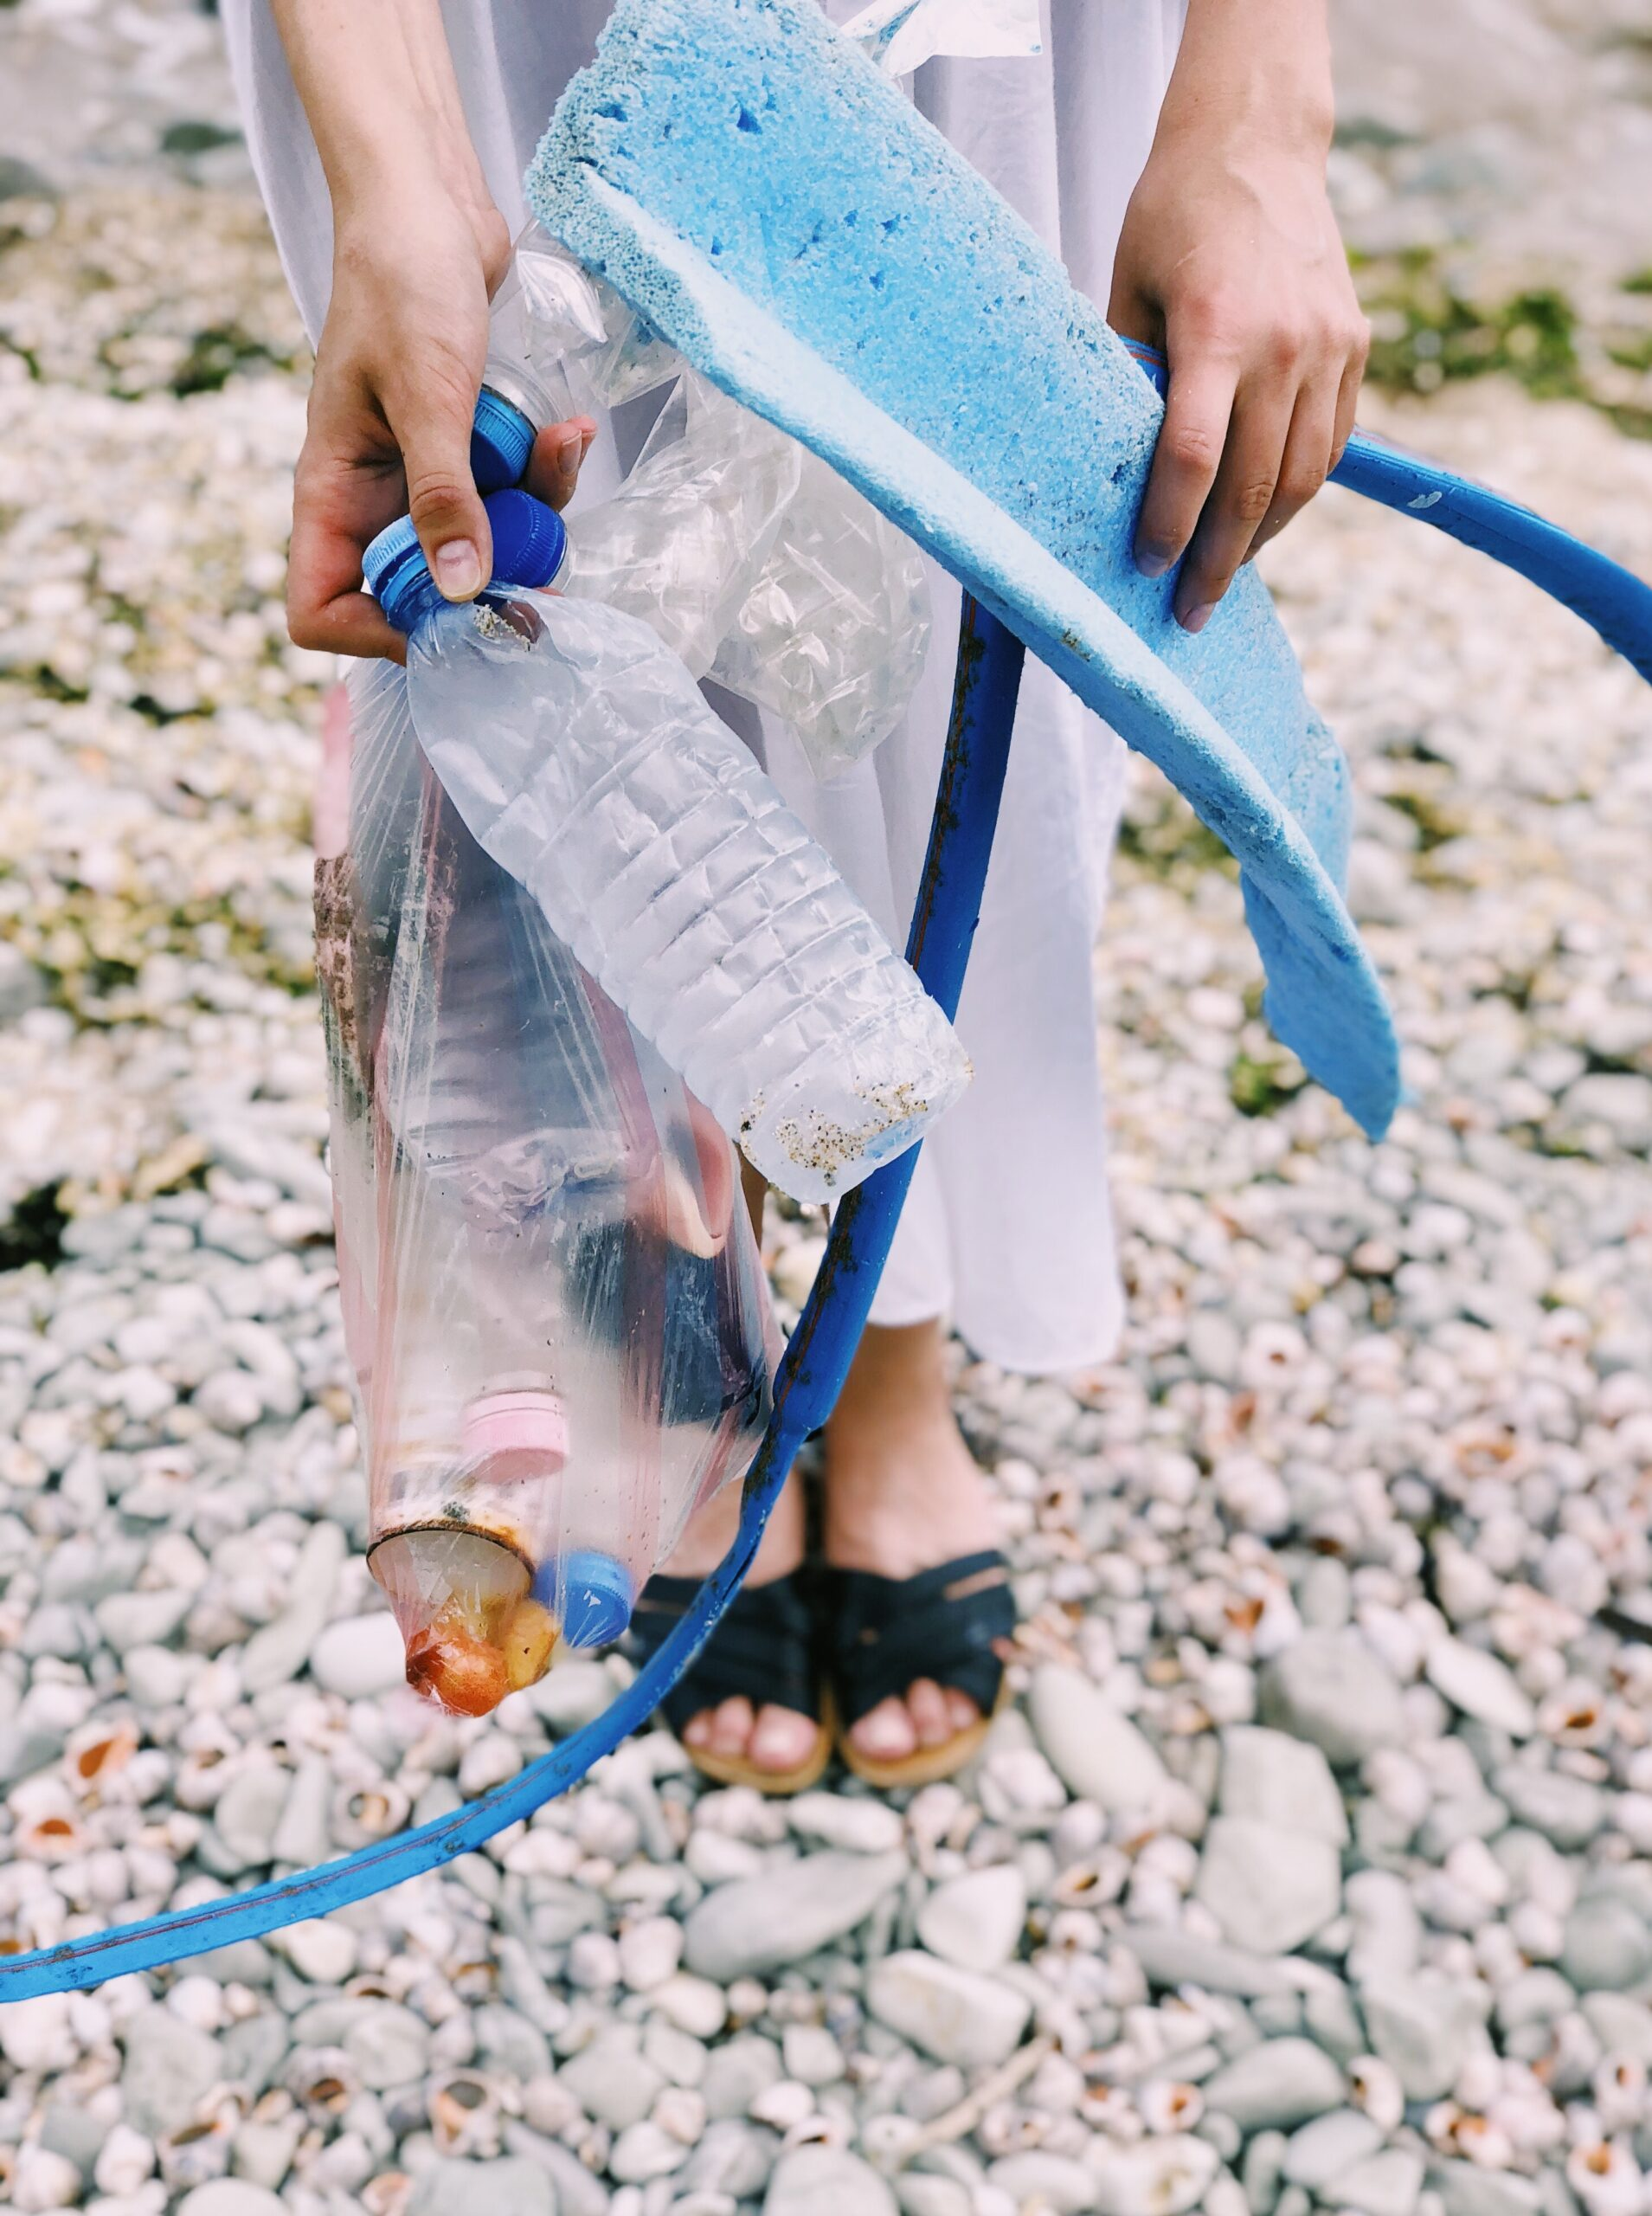 person-holding-plastic-bottles-and-hose-1201589